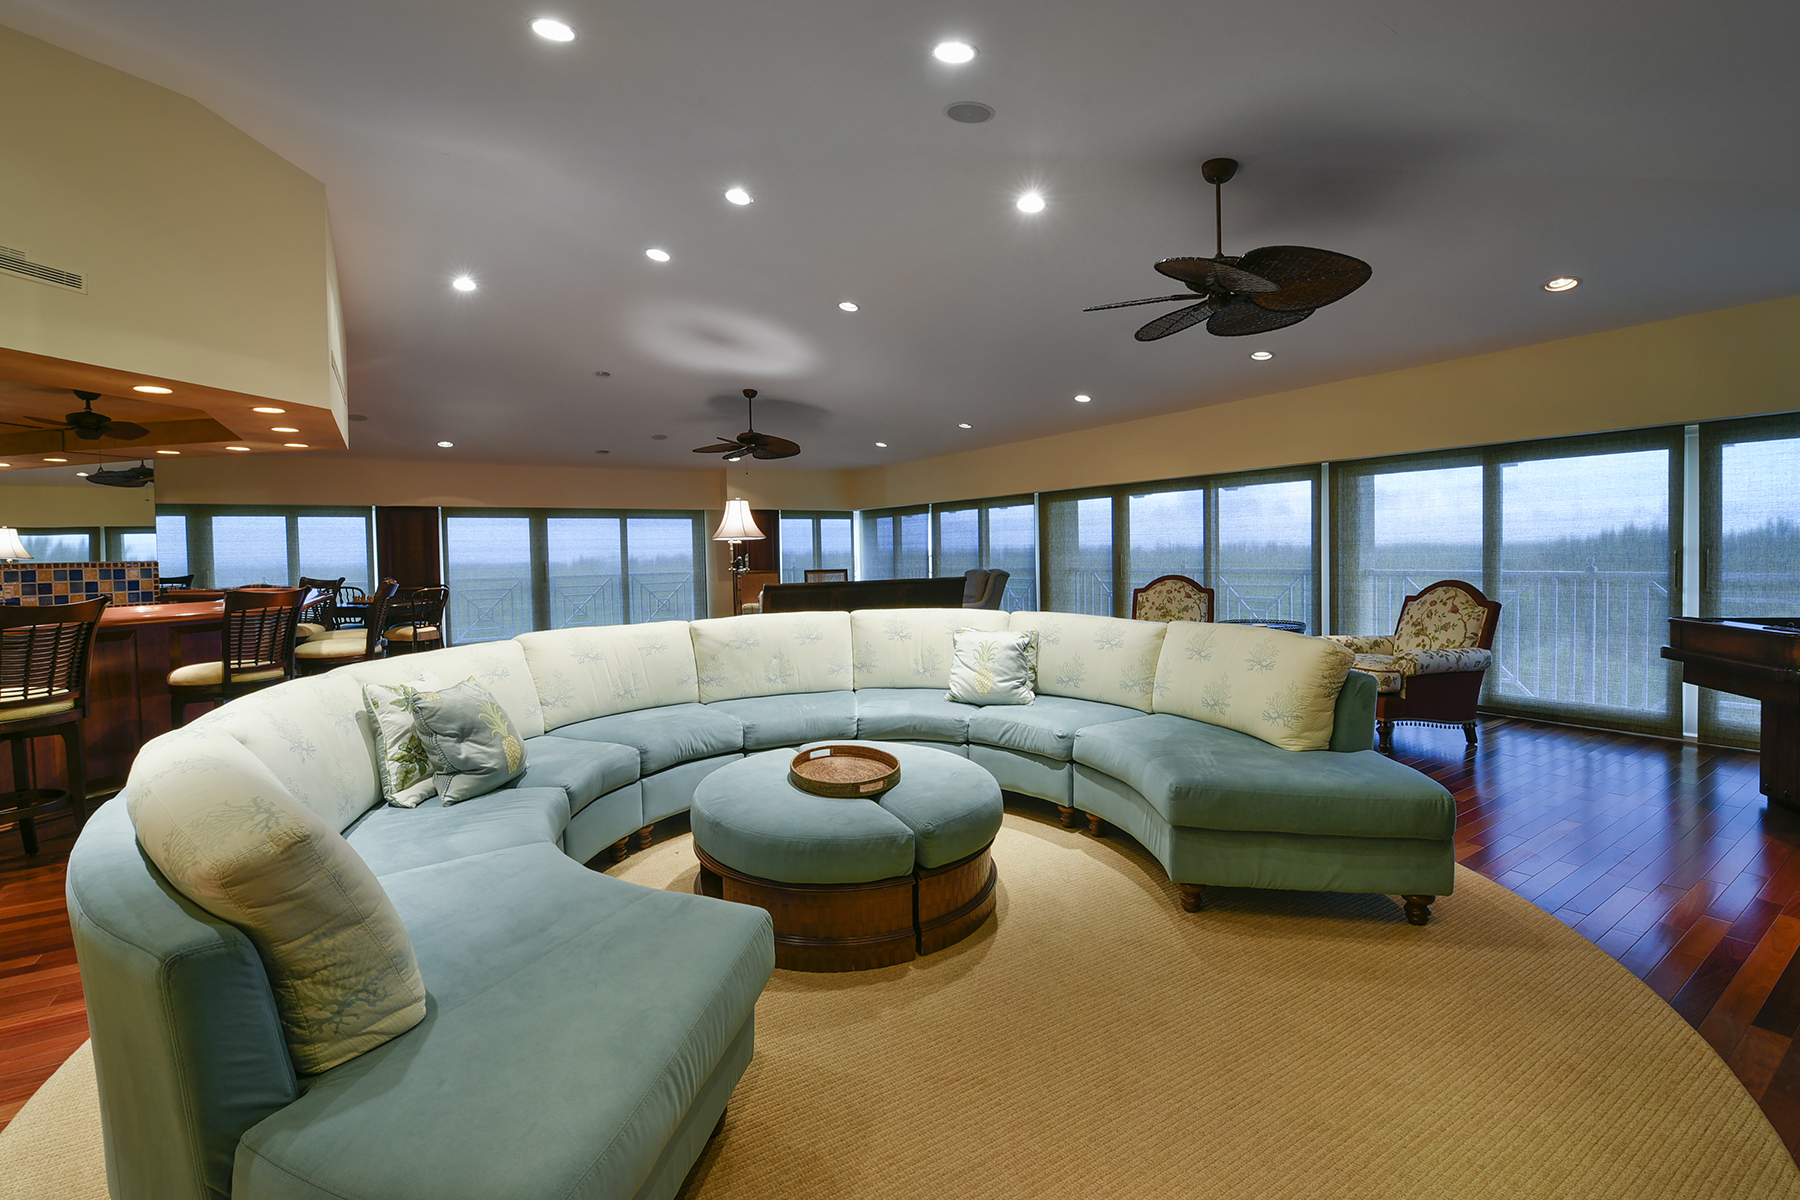 Penthouse Living at Ocean Reef 48 Barracuda Lane Key Largo, Florida 33037 United States